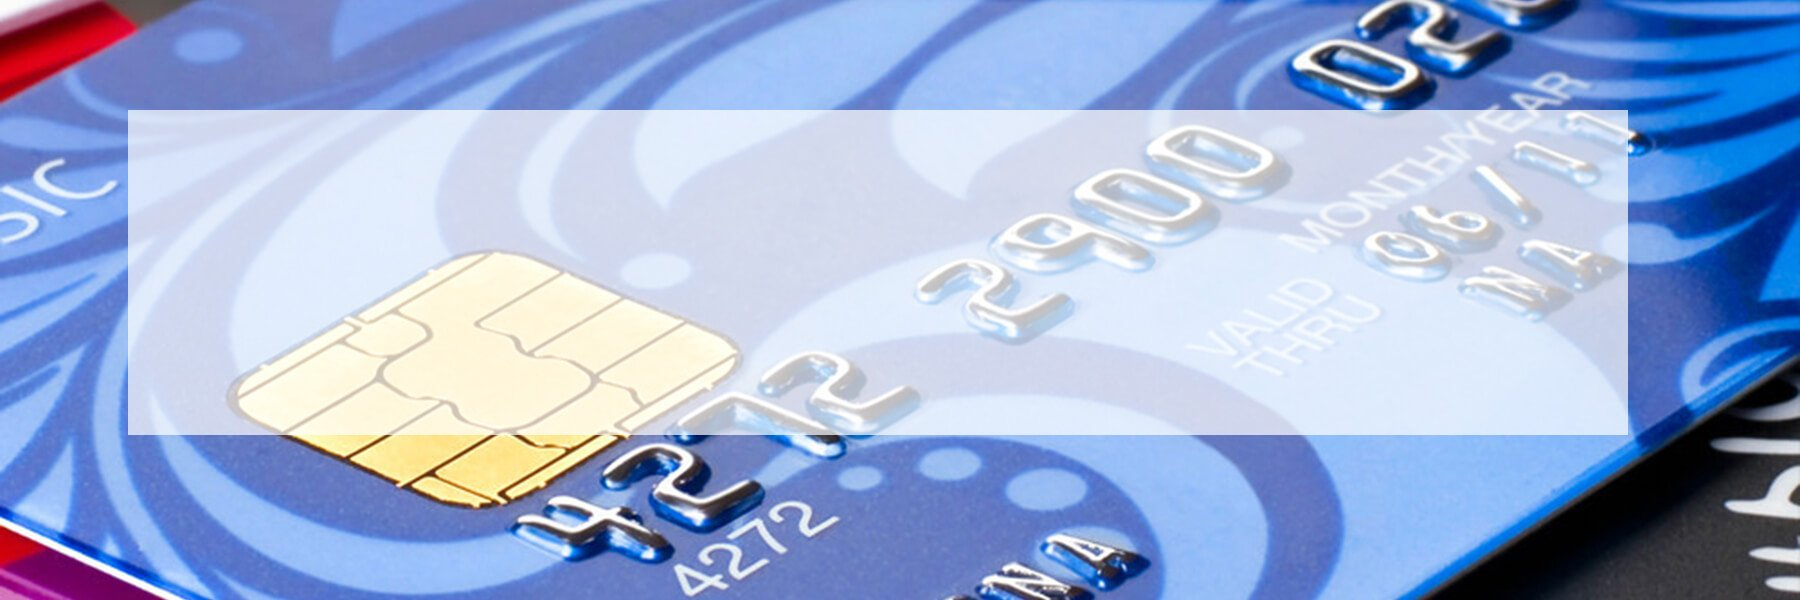 chip cards banner